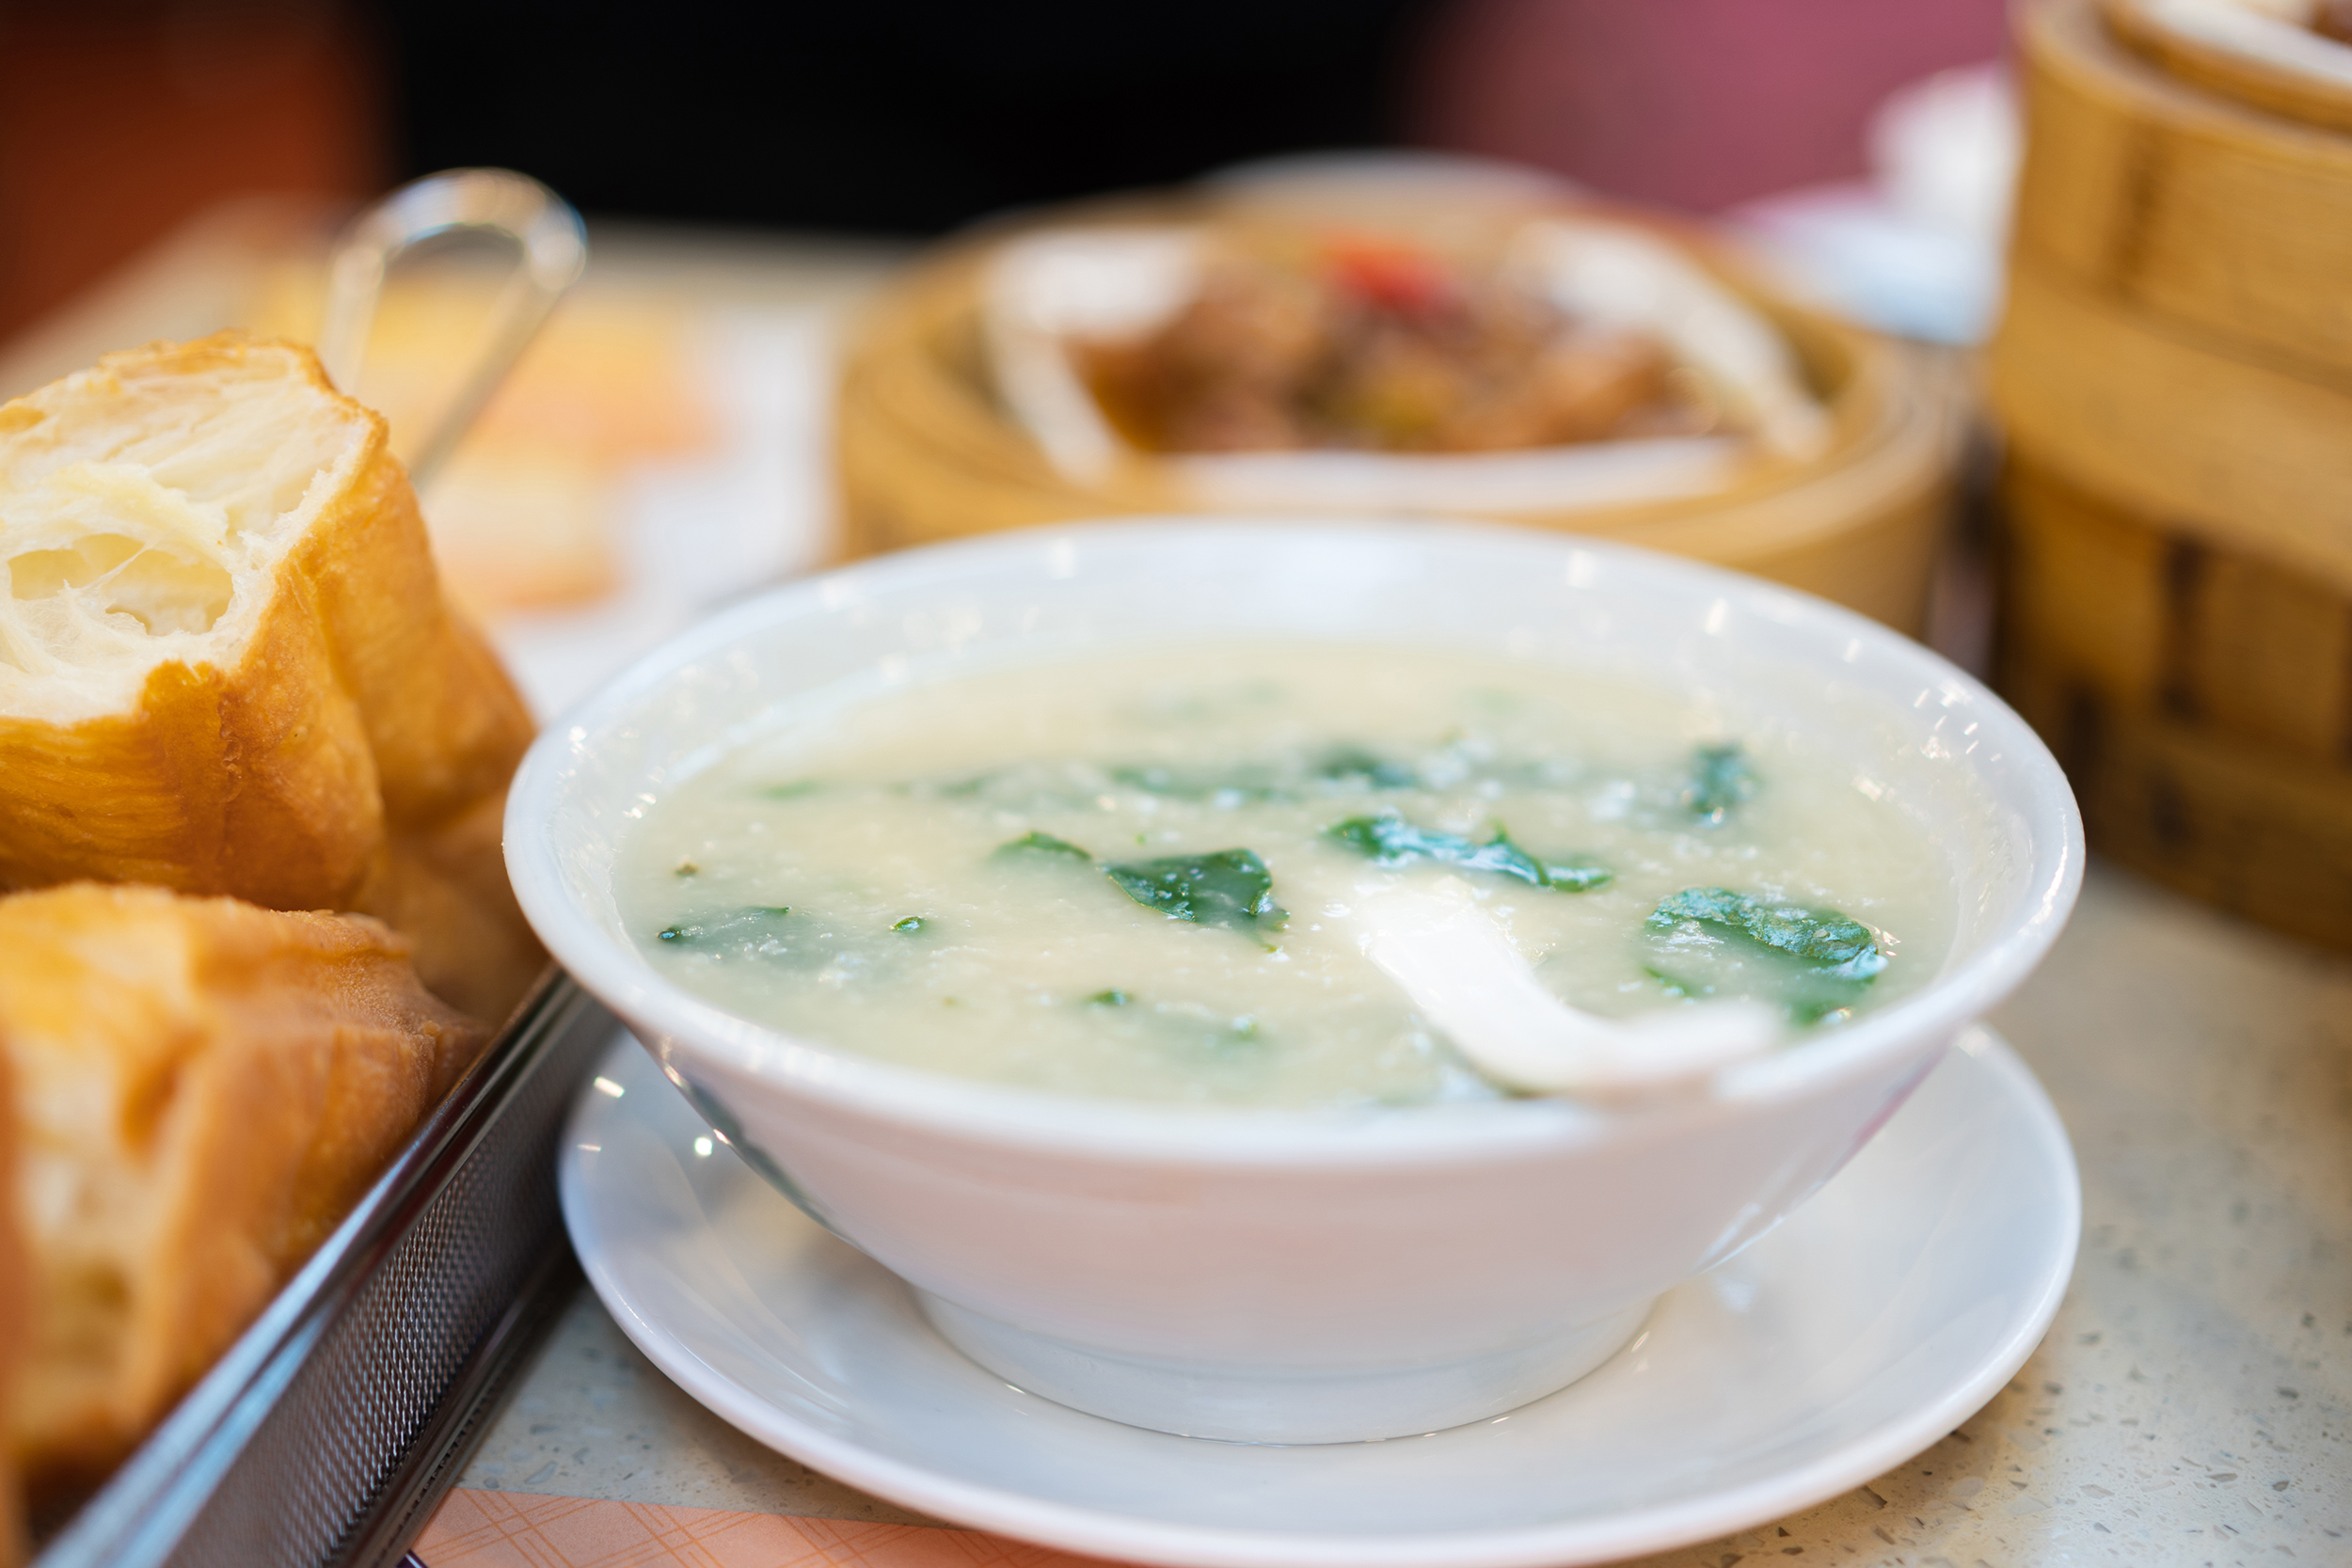 White woman making 'improved' congee apologizes